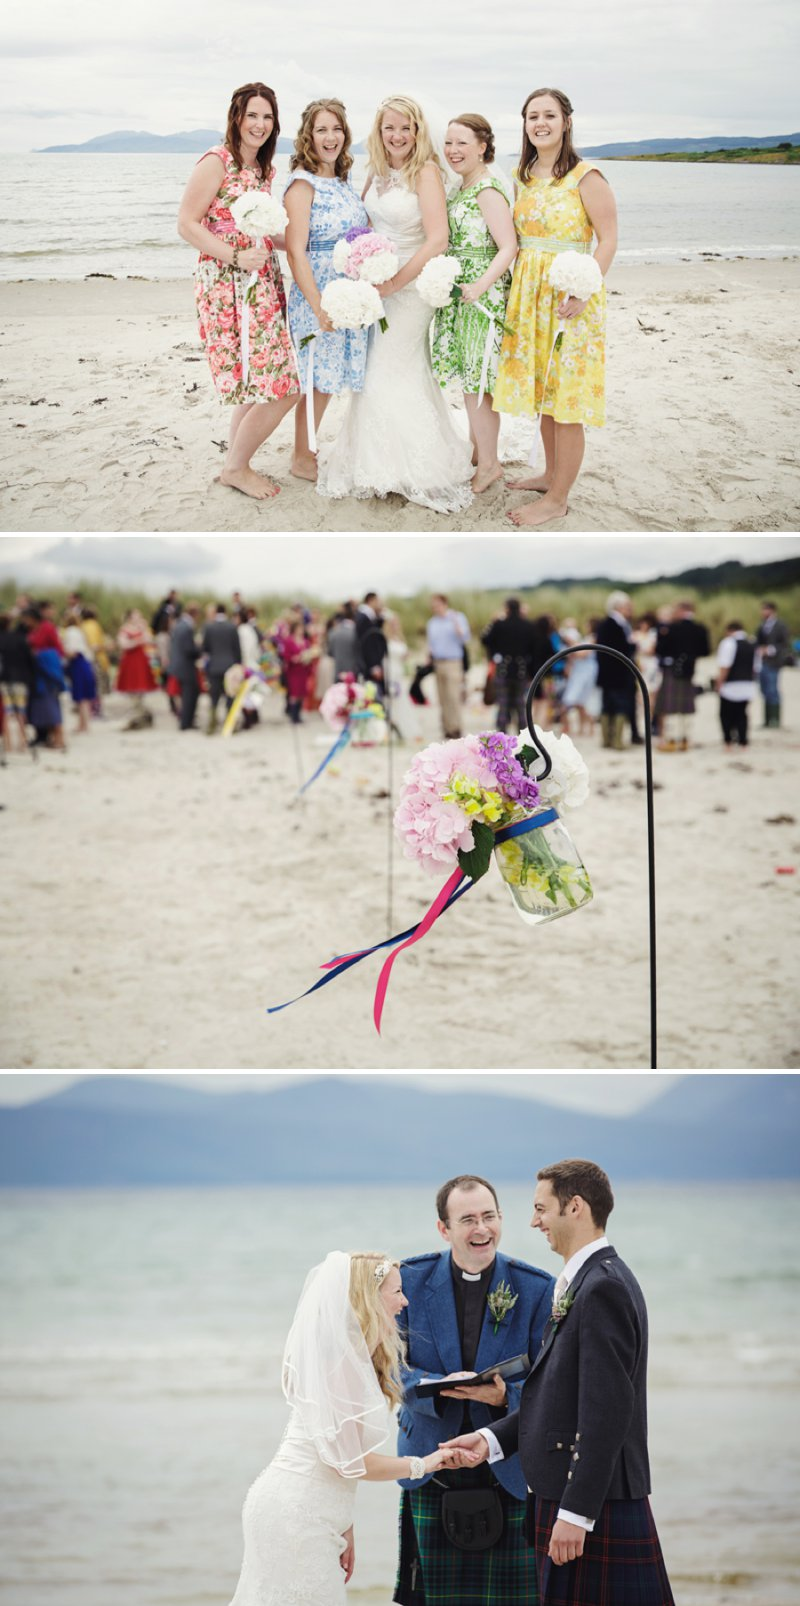 Rustic Scottish Beach Wedding With Bride In Justin Alexander And Vivien Of Holloway And Groom In Kilt With Bridesmaids In 50s Style Gowns With A Traditional Scottish Ceilidh 1